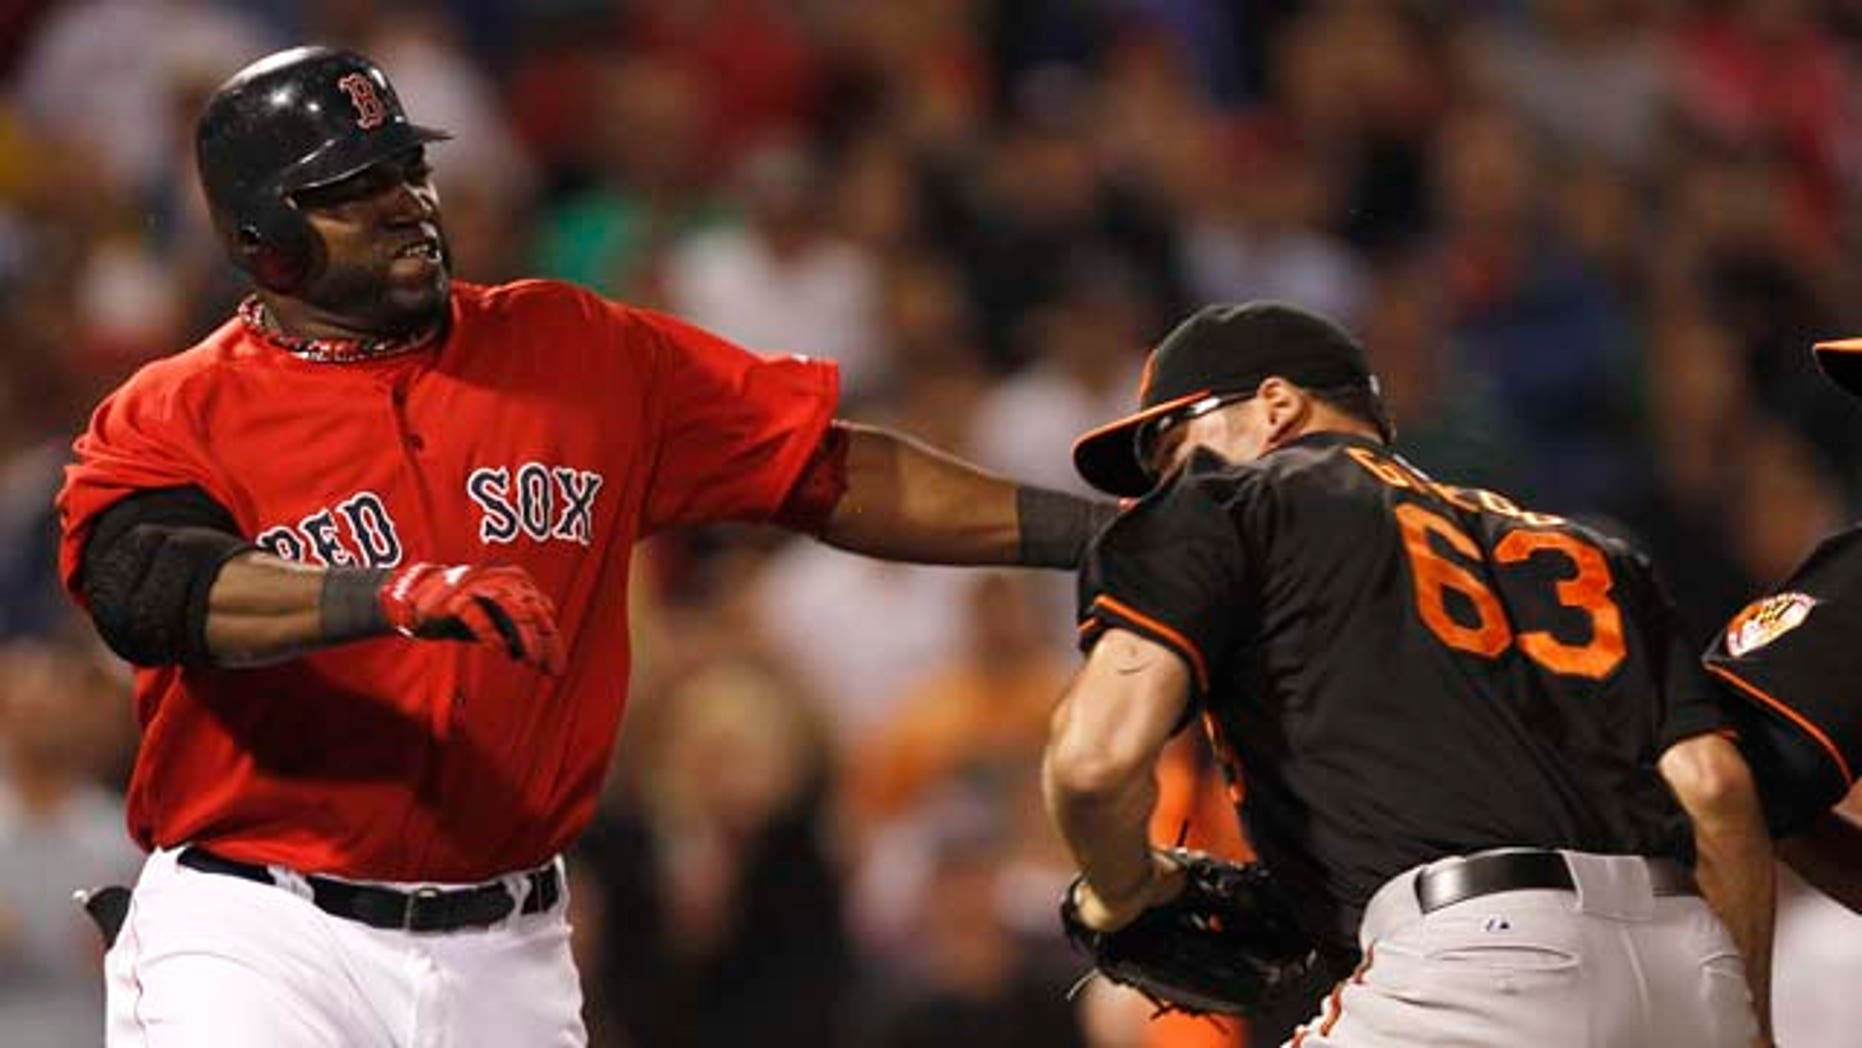 Boston Red Sox designated hitter David Ortiz takes a swing at Baltimore Orioles relief pitcher Kevin Gregg (63) after they exchanged words after Ortiz flied out during the eighth inning of a baseball game at Fenway Park in Boston on Friday, July 8, 2011. (AP Photo/Winslow Townson)